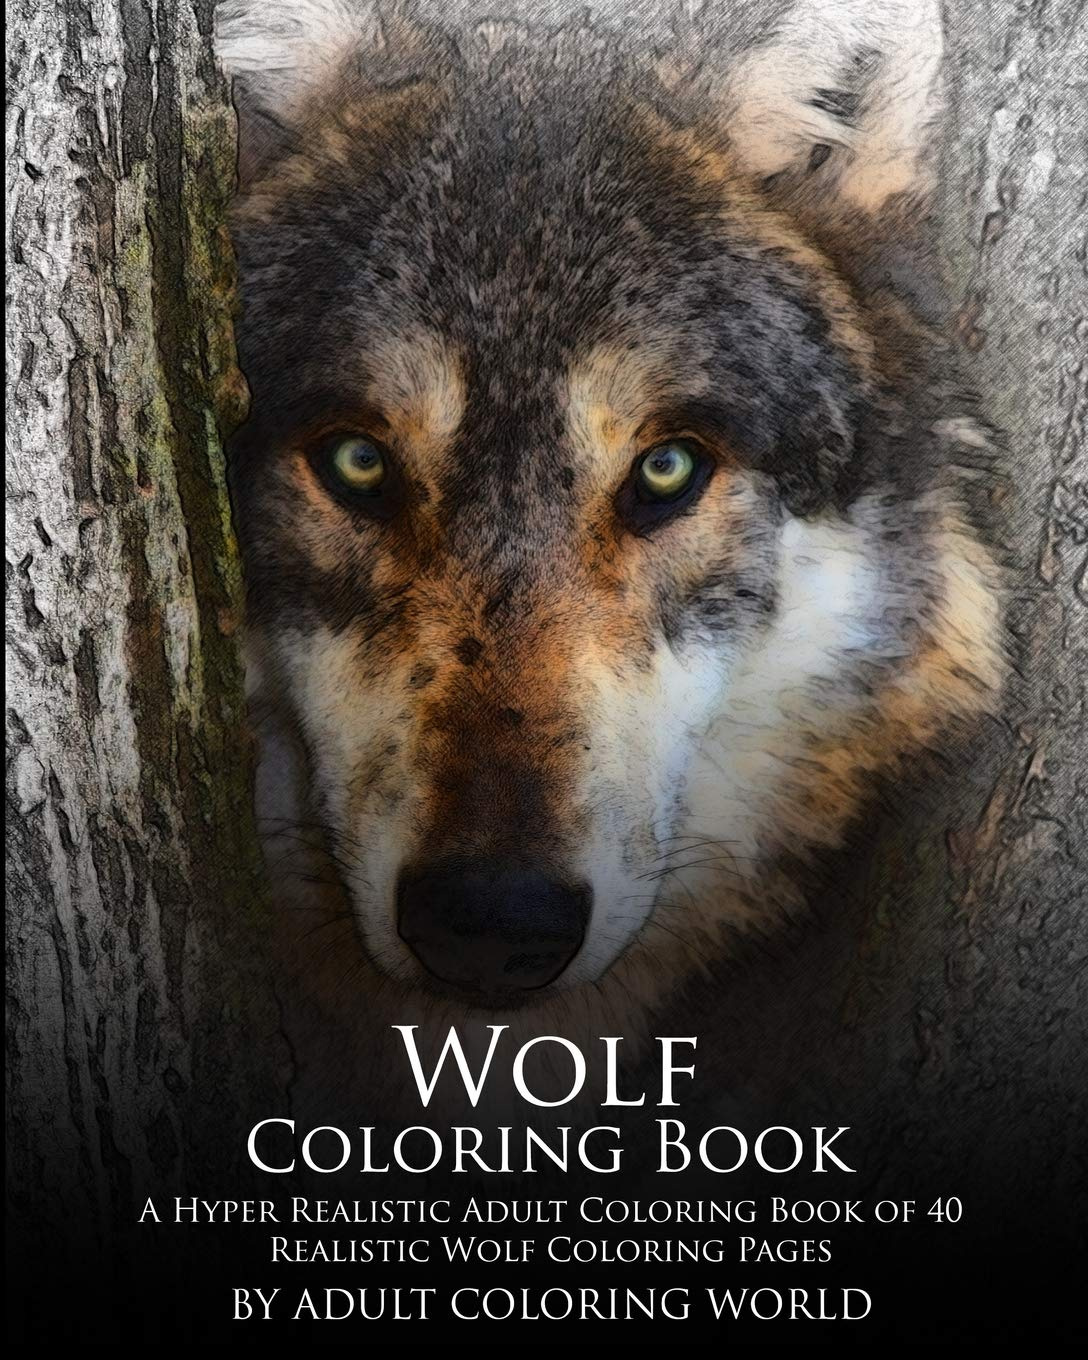 - Amazon.com: Wolf Coloring Book: A Hyper Realistic Adult Coloring